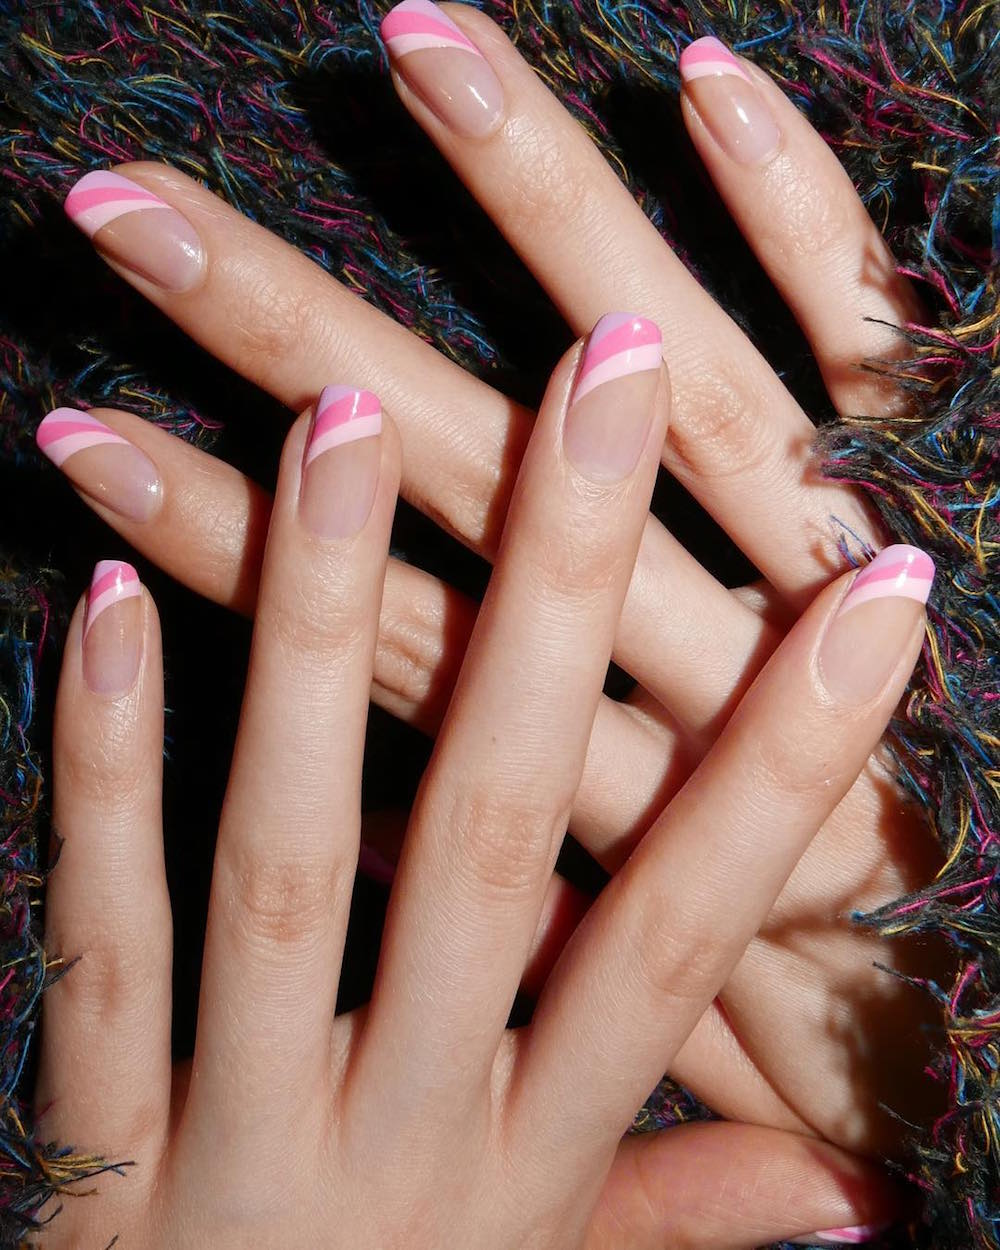 20 Cool Nail Art Designs To Heat Up Summer Thefashionspot